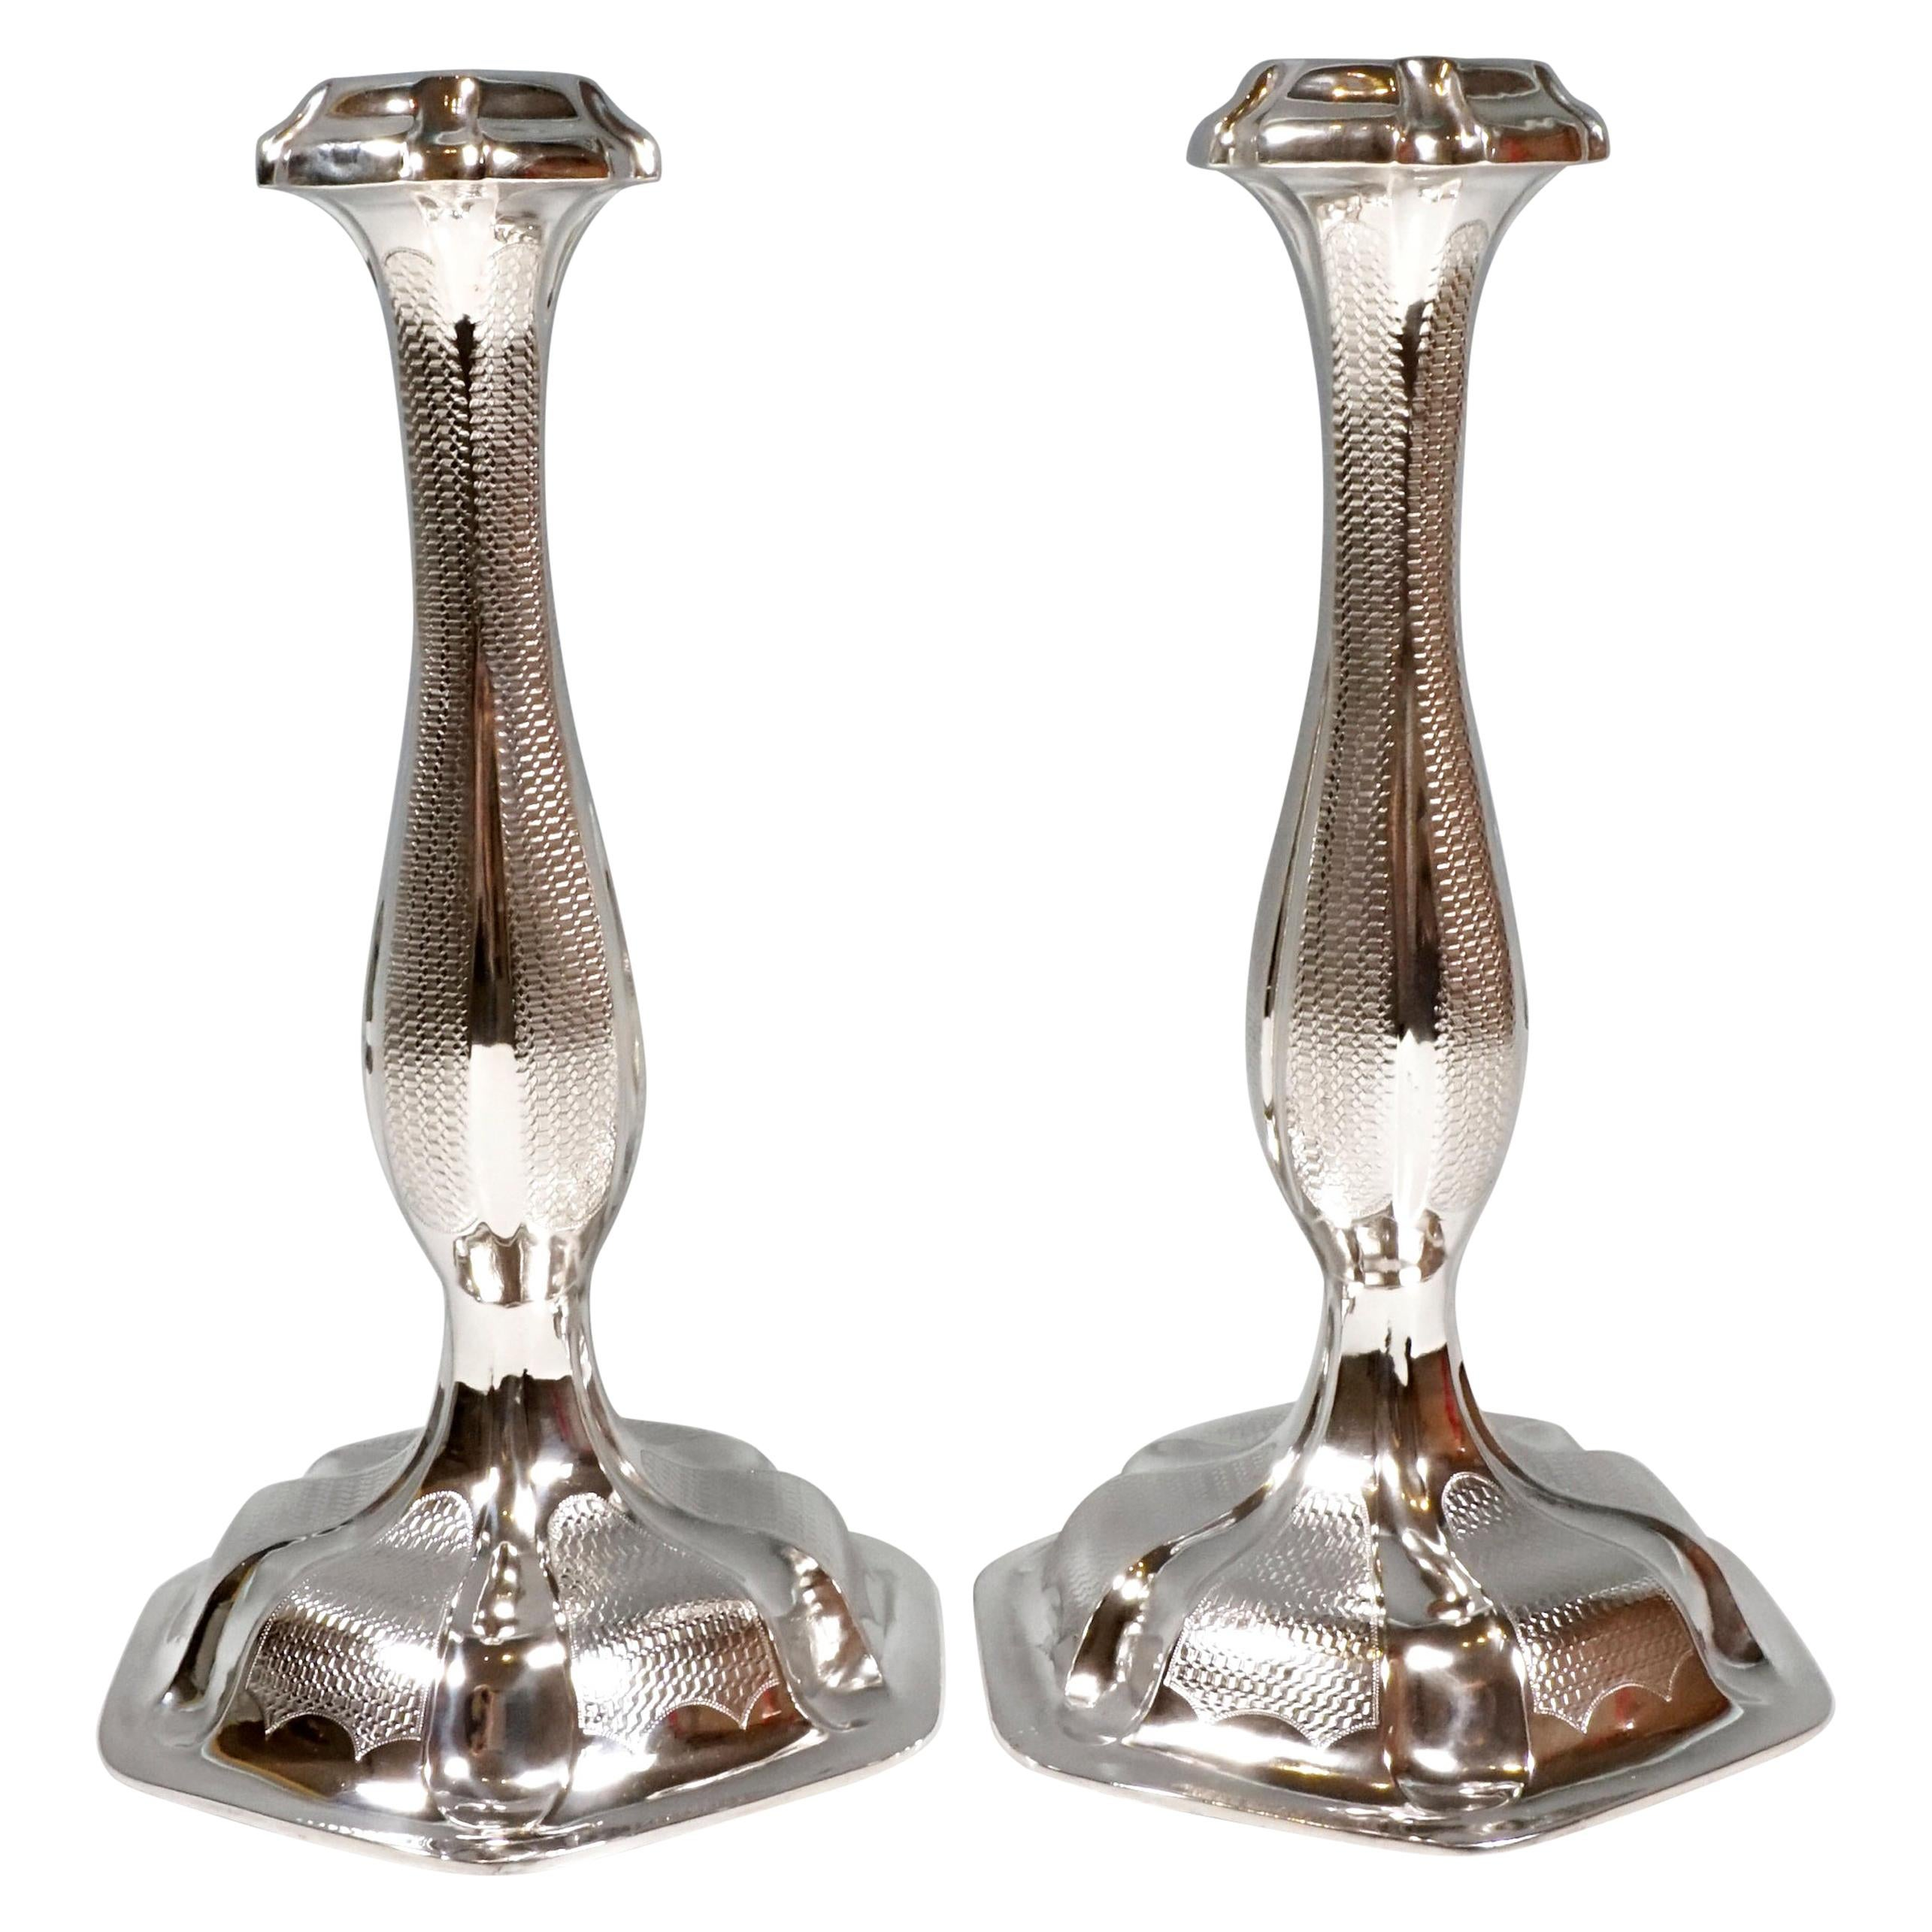 Pair of Antique Vienna Biedermeier Silver Candle Holders, Dated 1857